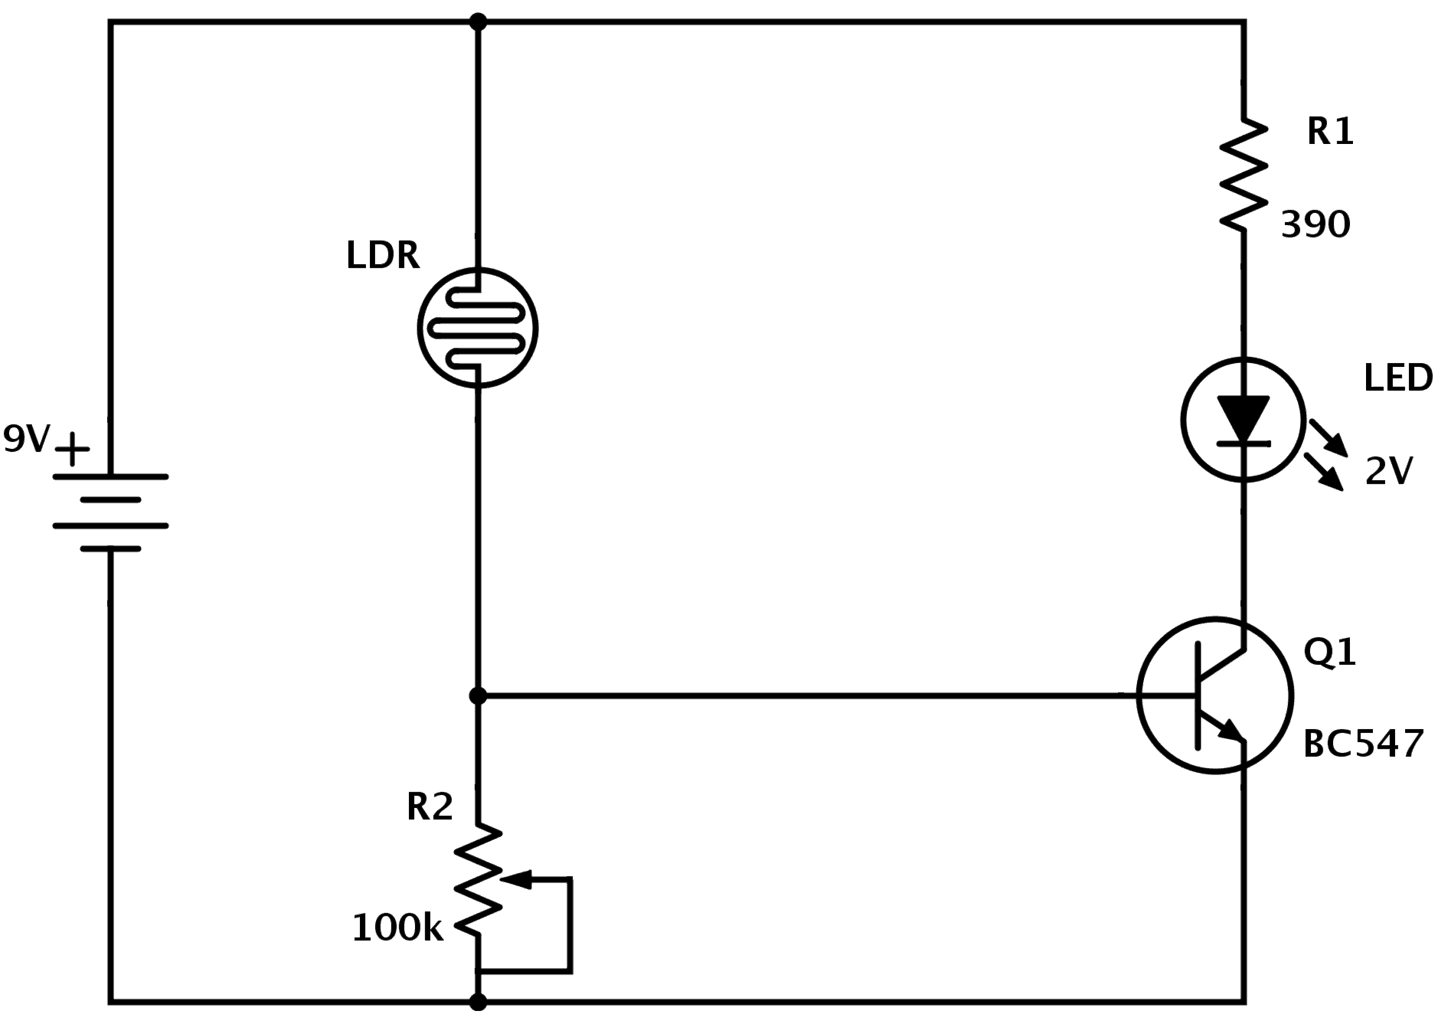 Circuit Diagram Drawing Images Starting Know About Wiring Vol Tone Piezo How To Read And Understand Any Schematic Rh Build Electronic Circuits Com